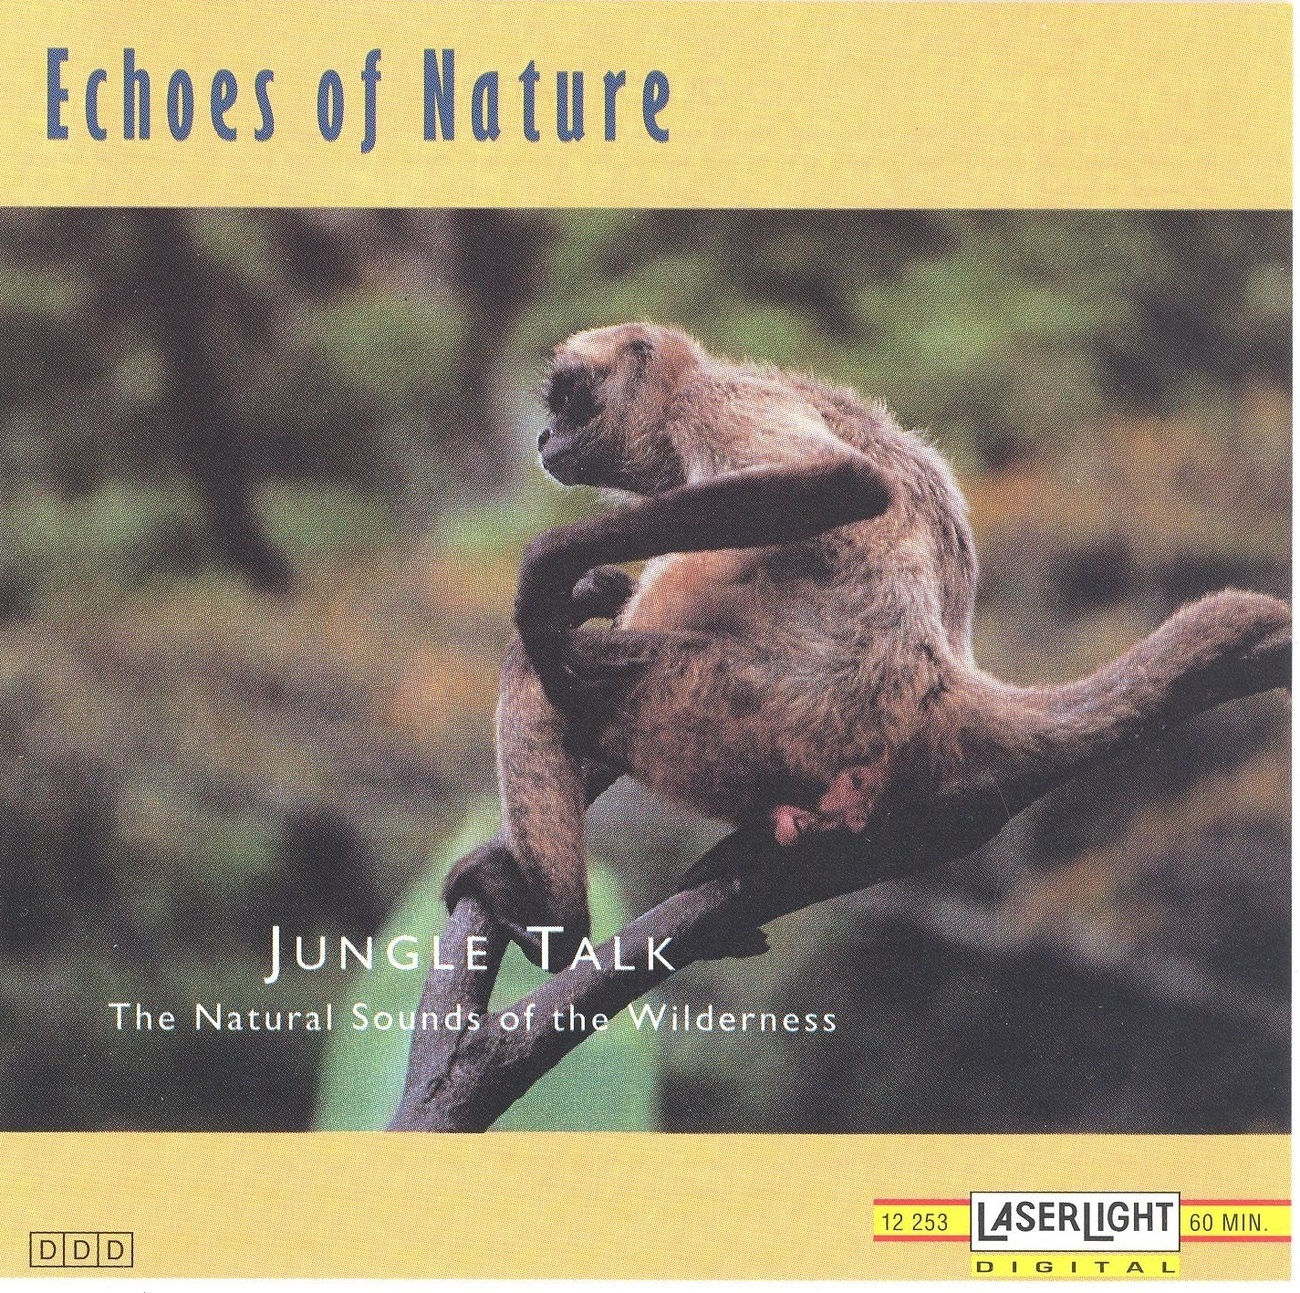 Echoes_of_nature_jungle_talk_1